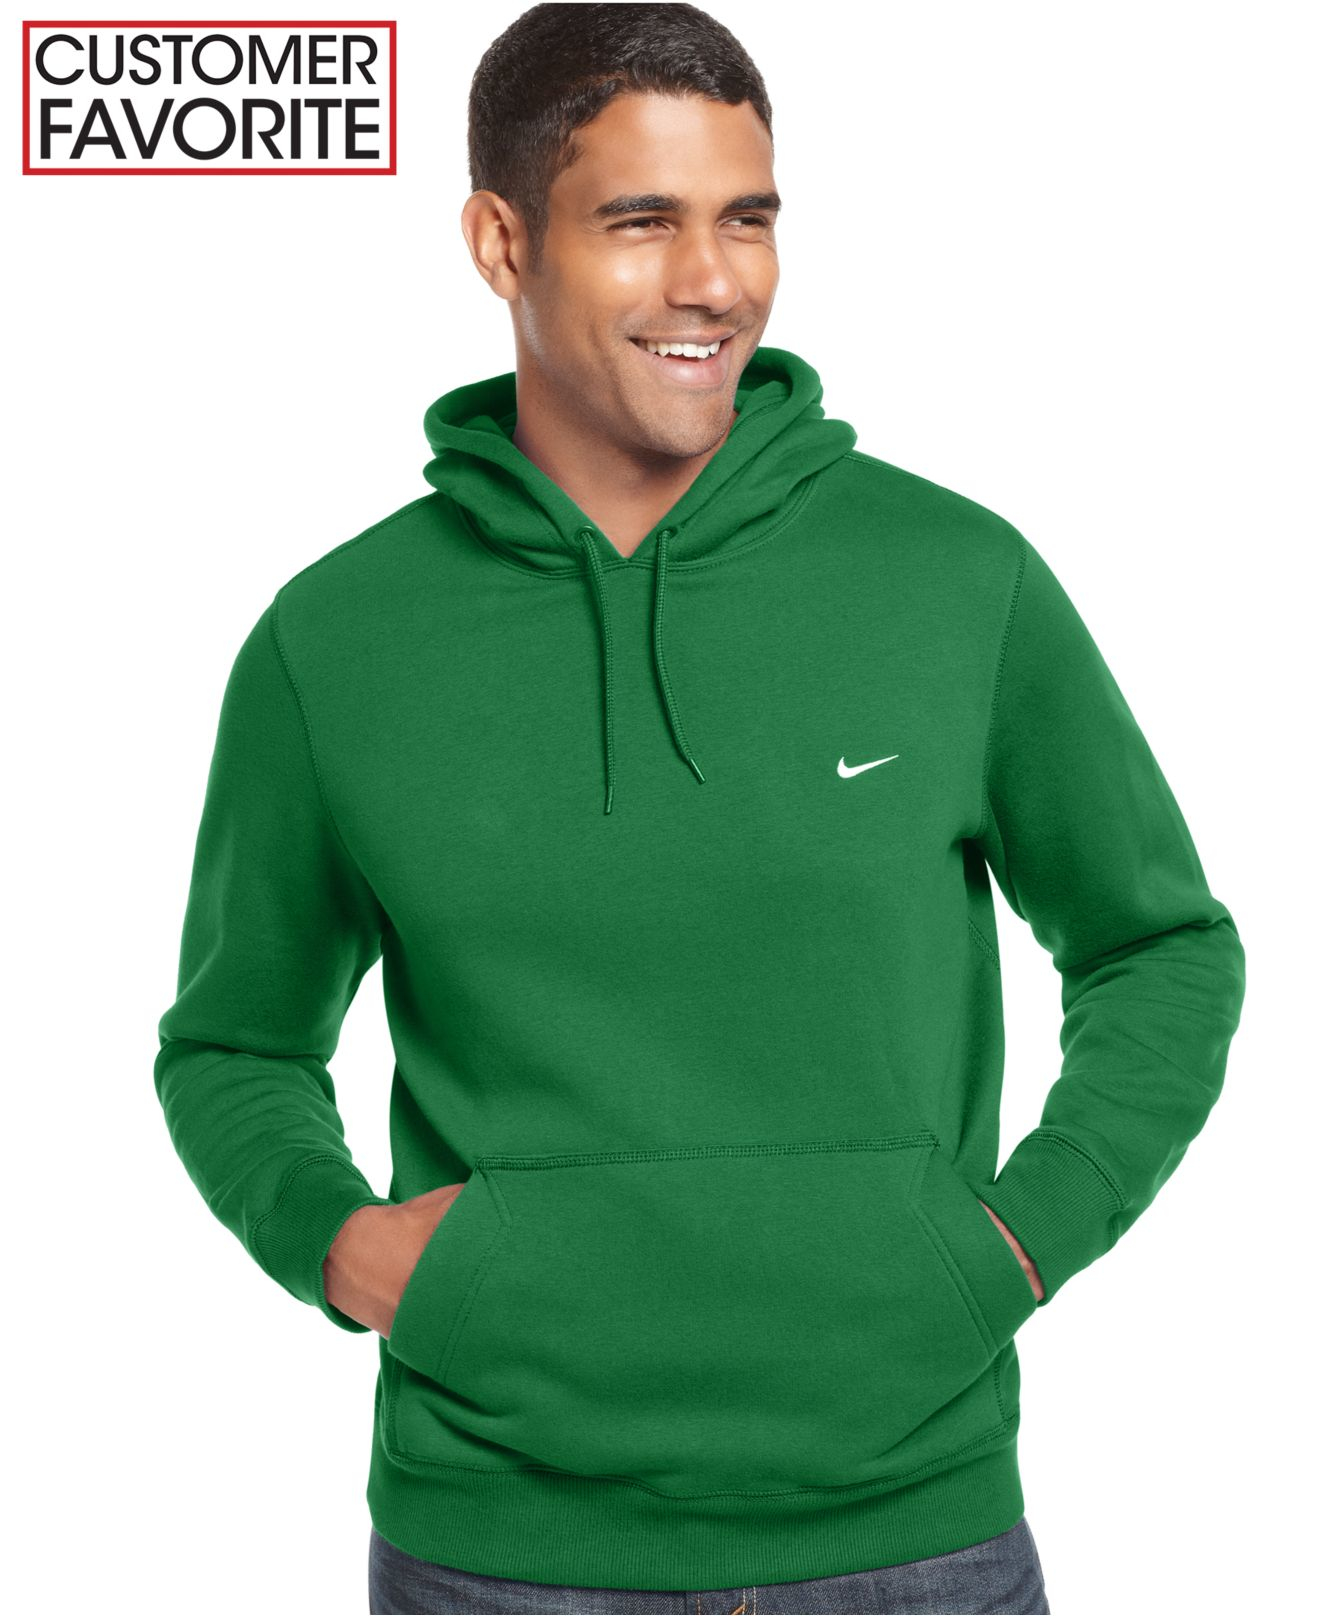 Fleece Hoodie Nike Lyst Men Pullover Classic In Qzu8zxq Green For xEgqIIw7